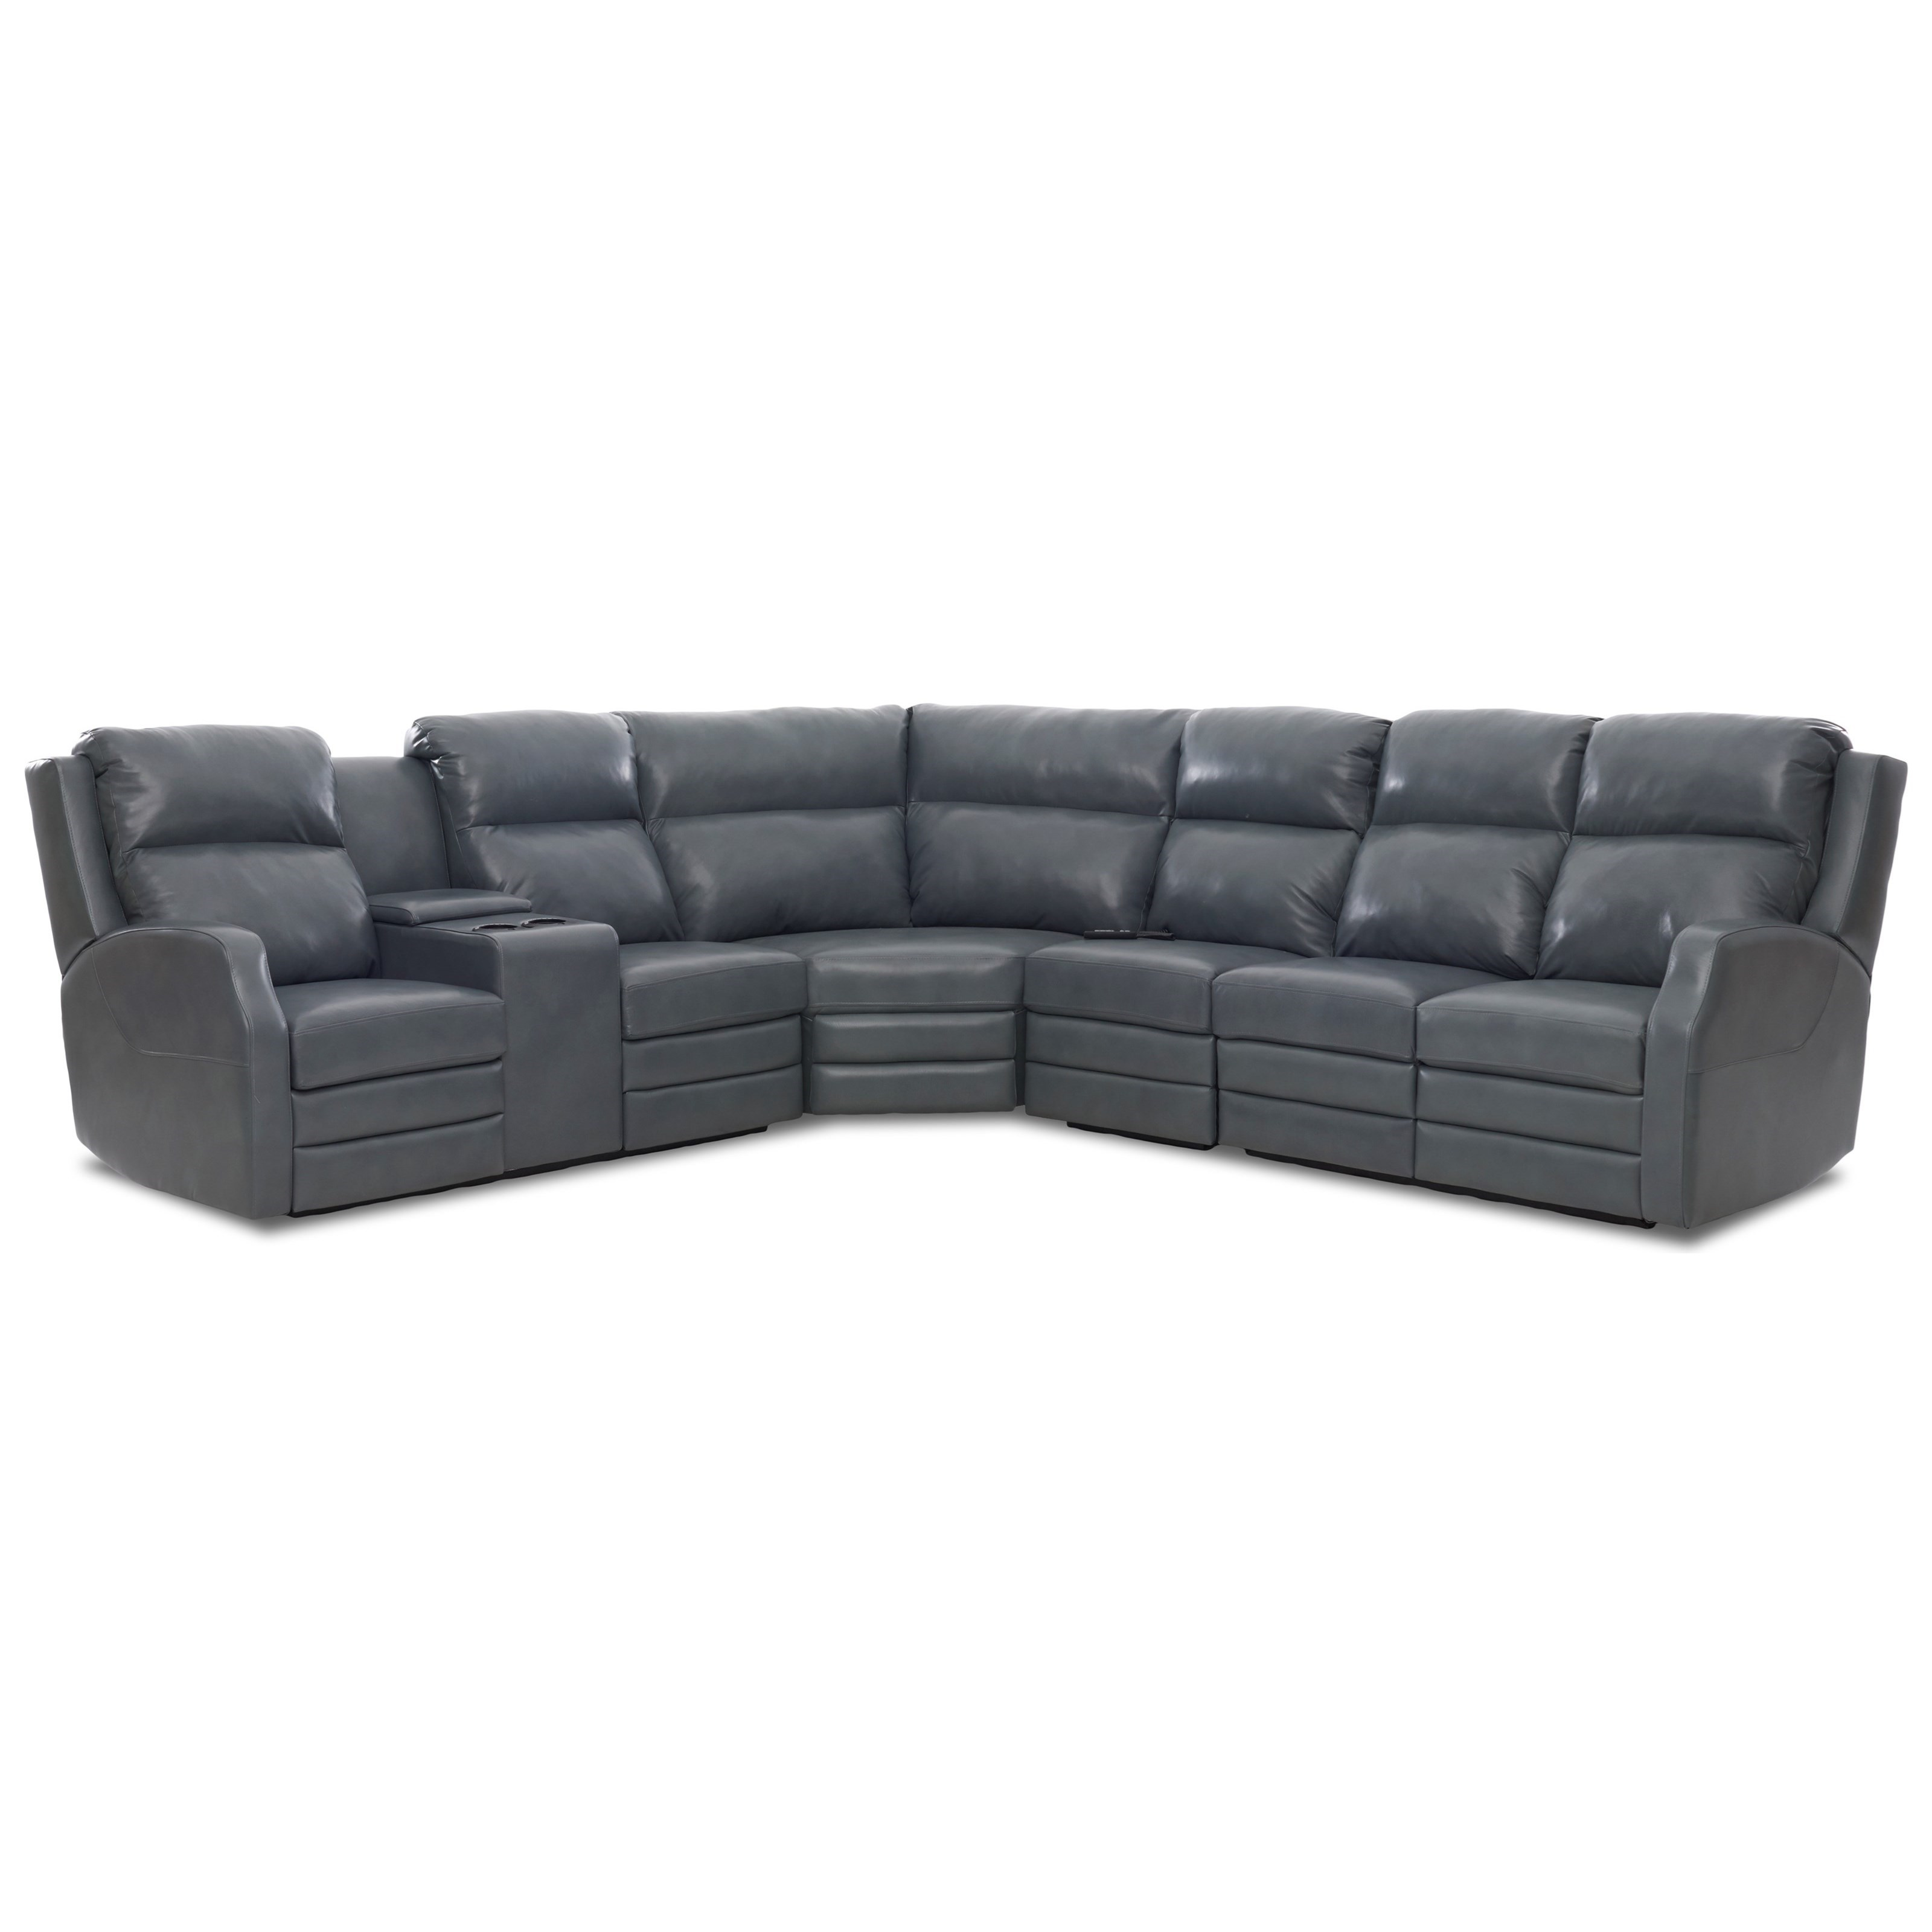 Enjoyable Kamiah Four Seat Power Reclining Sectional Sofa With Cupholder Storage Console And Usb Charging Ports By Klaussner At Dunk Bright Furniture Download Free Architecture Designs Xaembritishbridgeorg